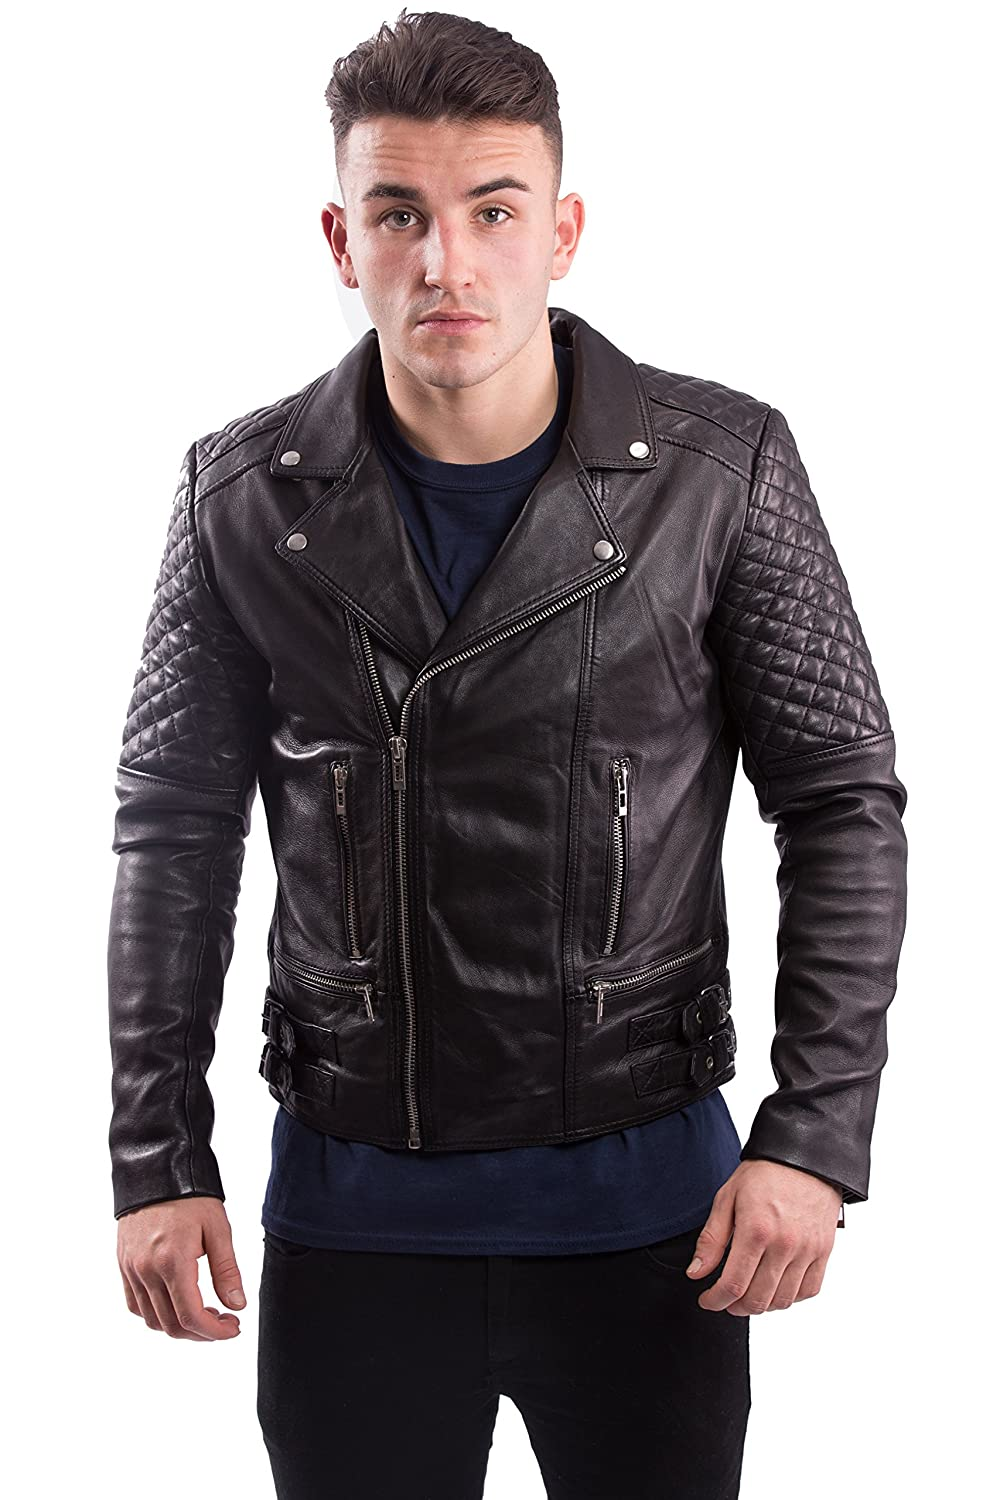 helifam? Hero Genuine Leather Jacket, Ideal for Bikers, with money Back guaranty